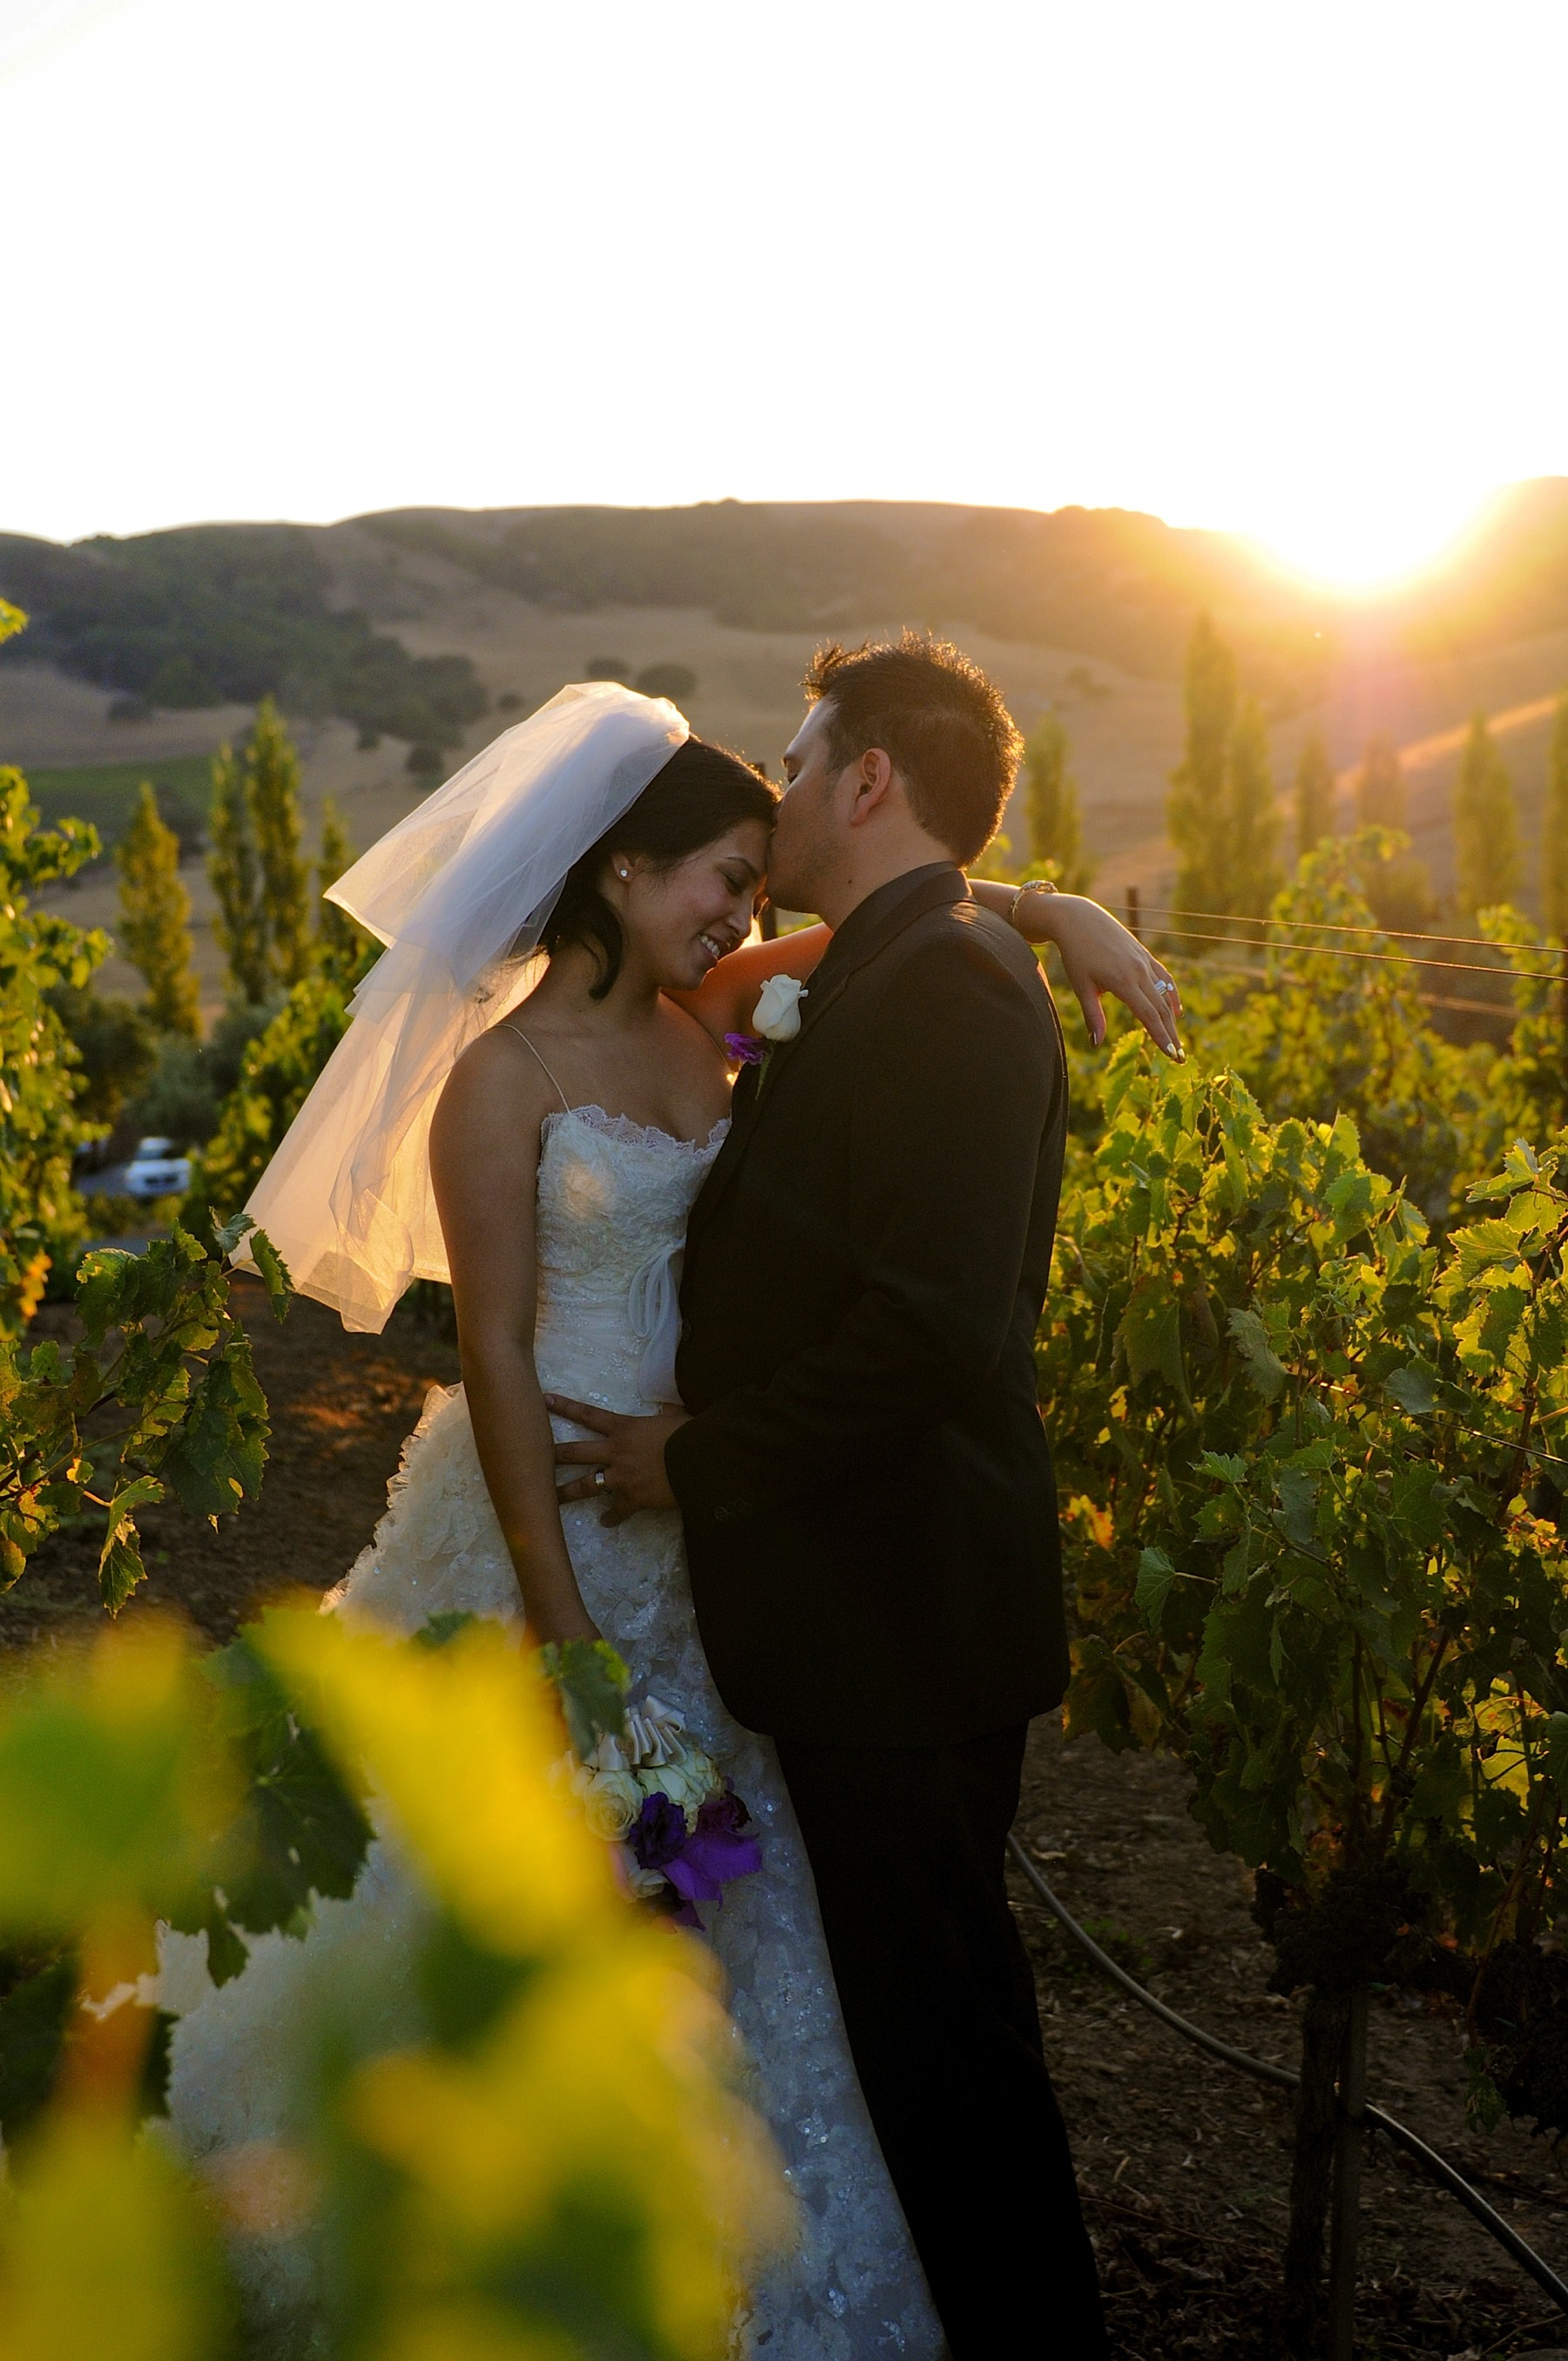 Viansa Winery Wedding Photographer.  Specializing in Destination and Elopement Photography in Napa, Sonoma, Wine Country Wedding Photography